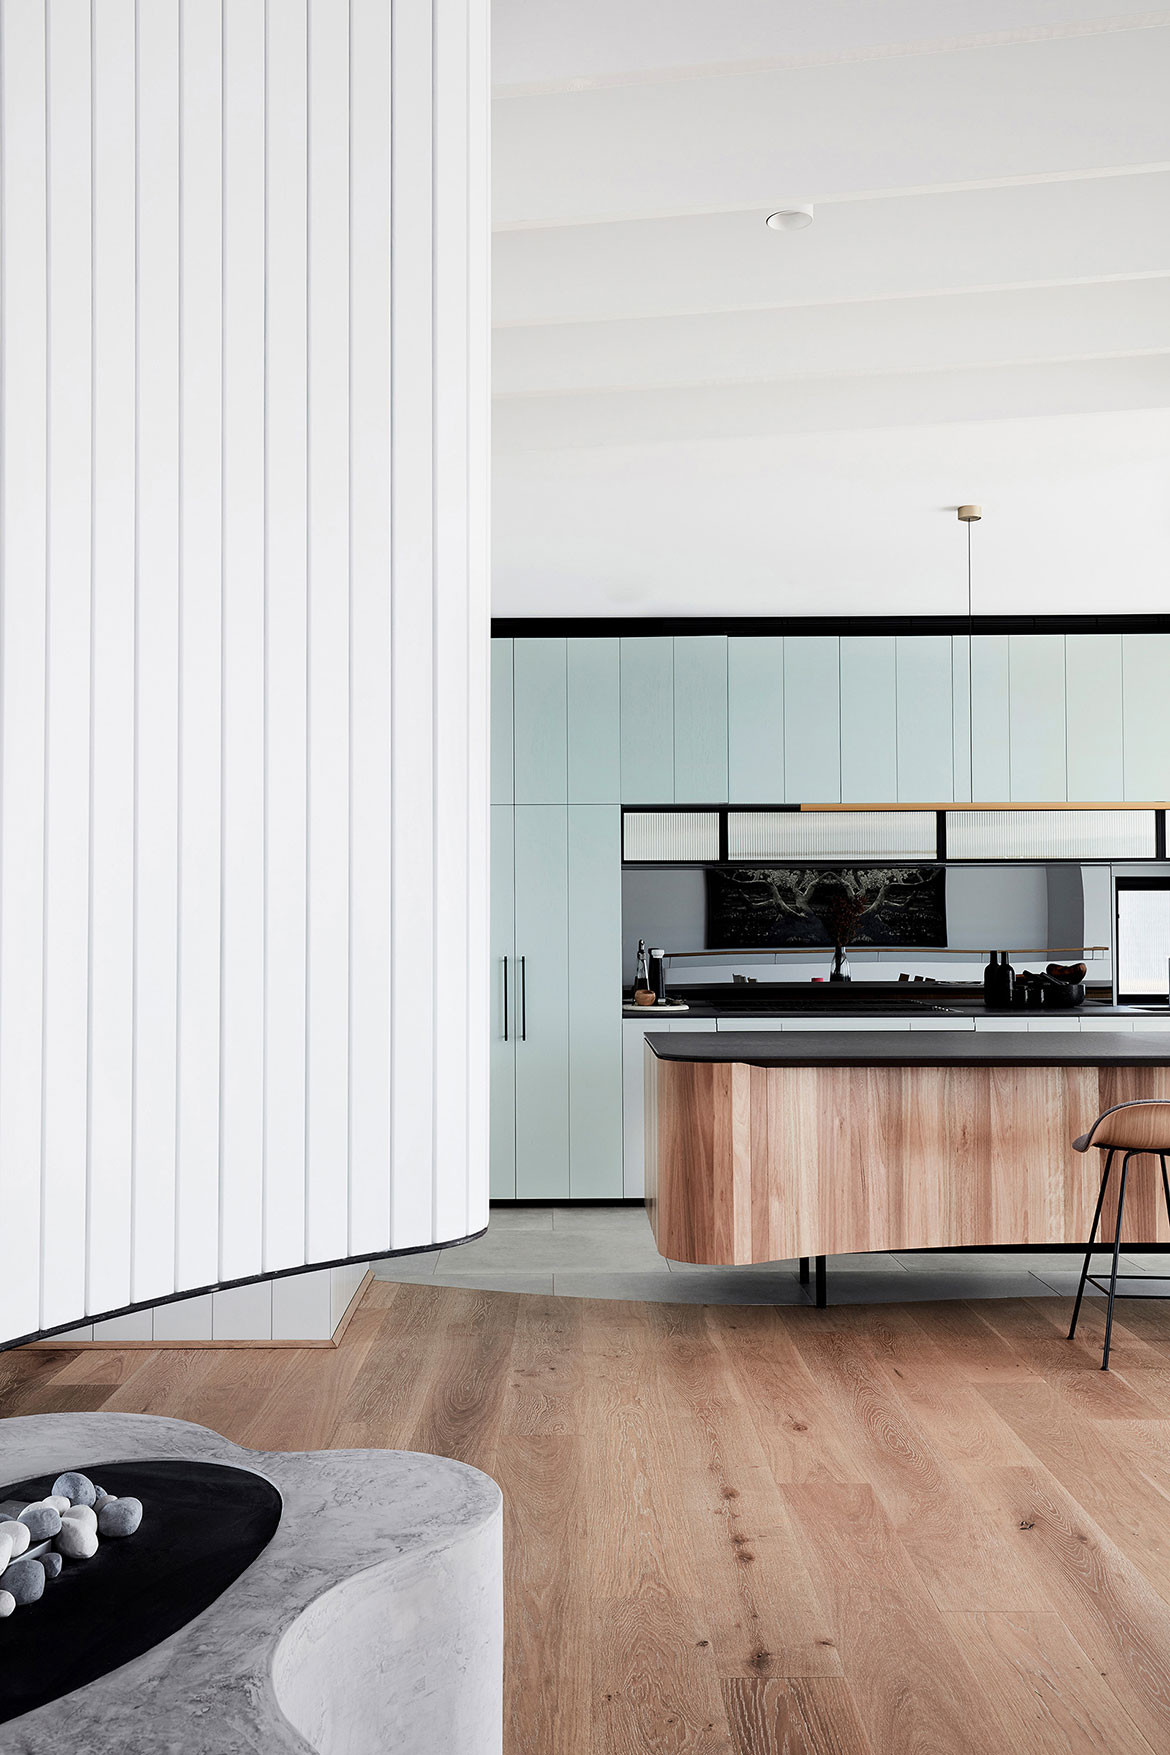 Tamas Tee House Luigi Rosselli Architects kitchen